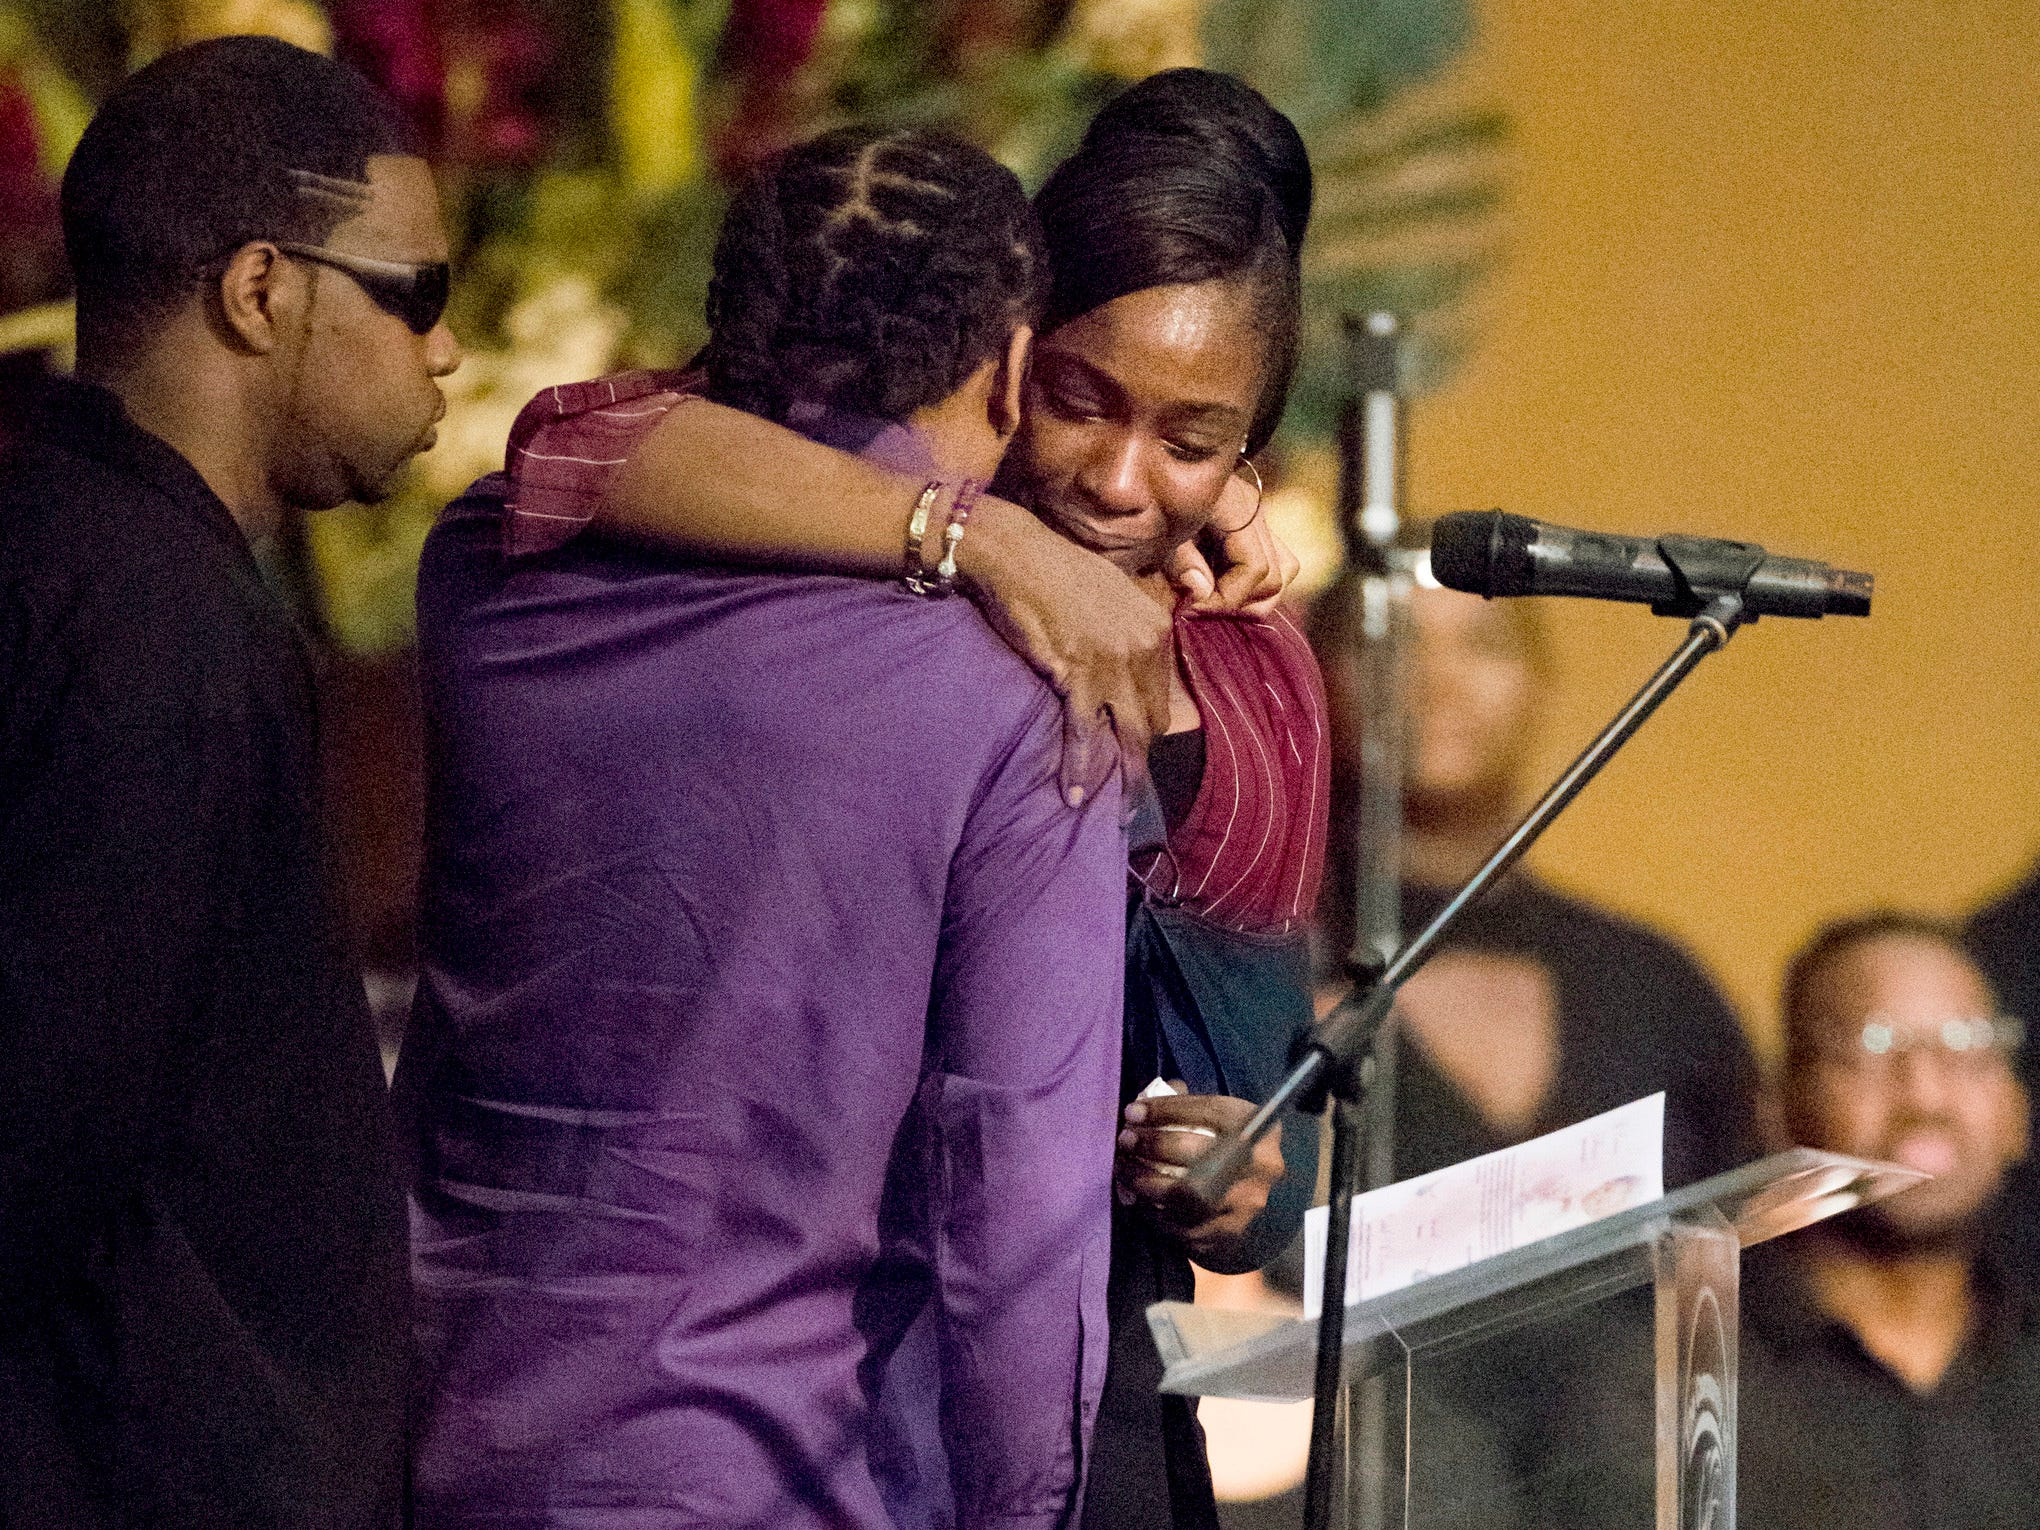 LaPorsha Washington and James Barnes embrace after speaking about their daughter Jazmine Barnes at her memorial service.